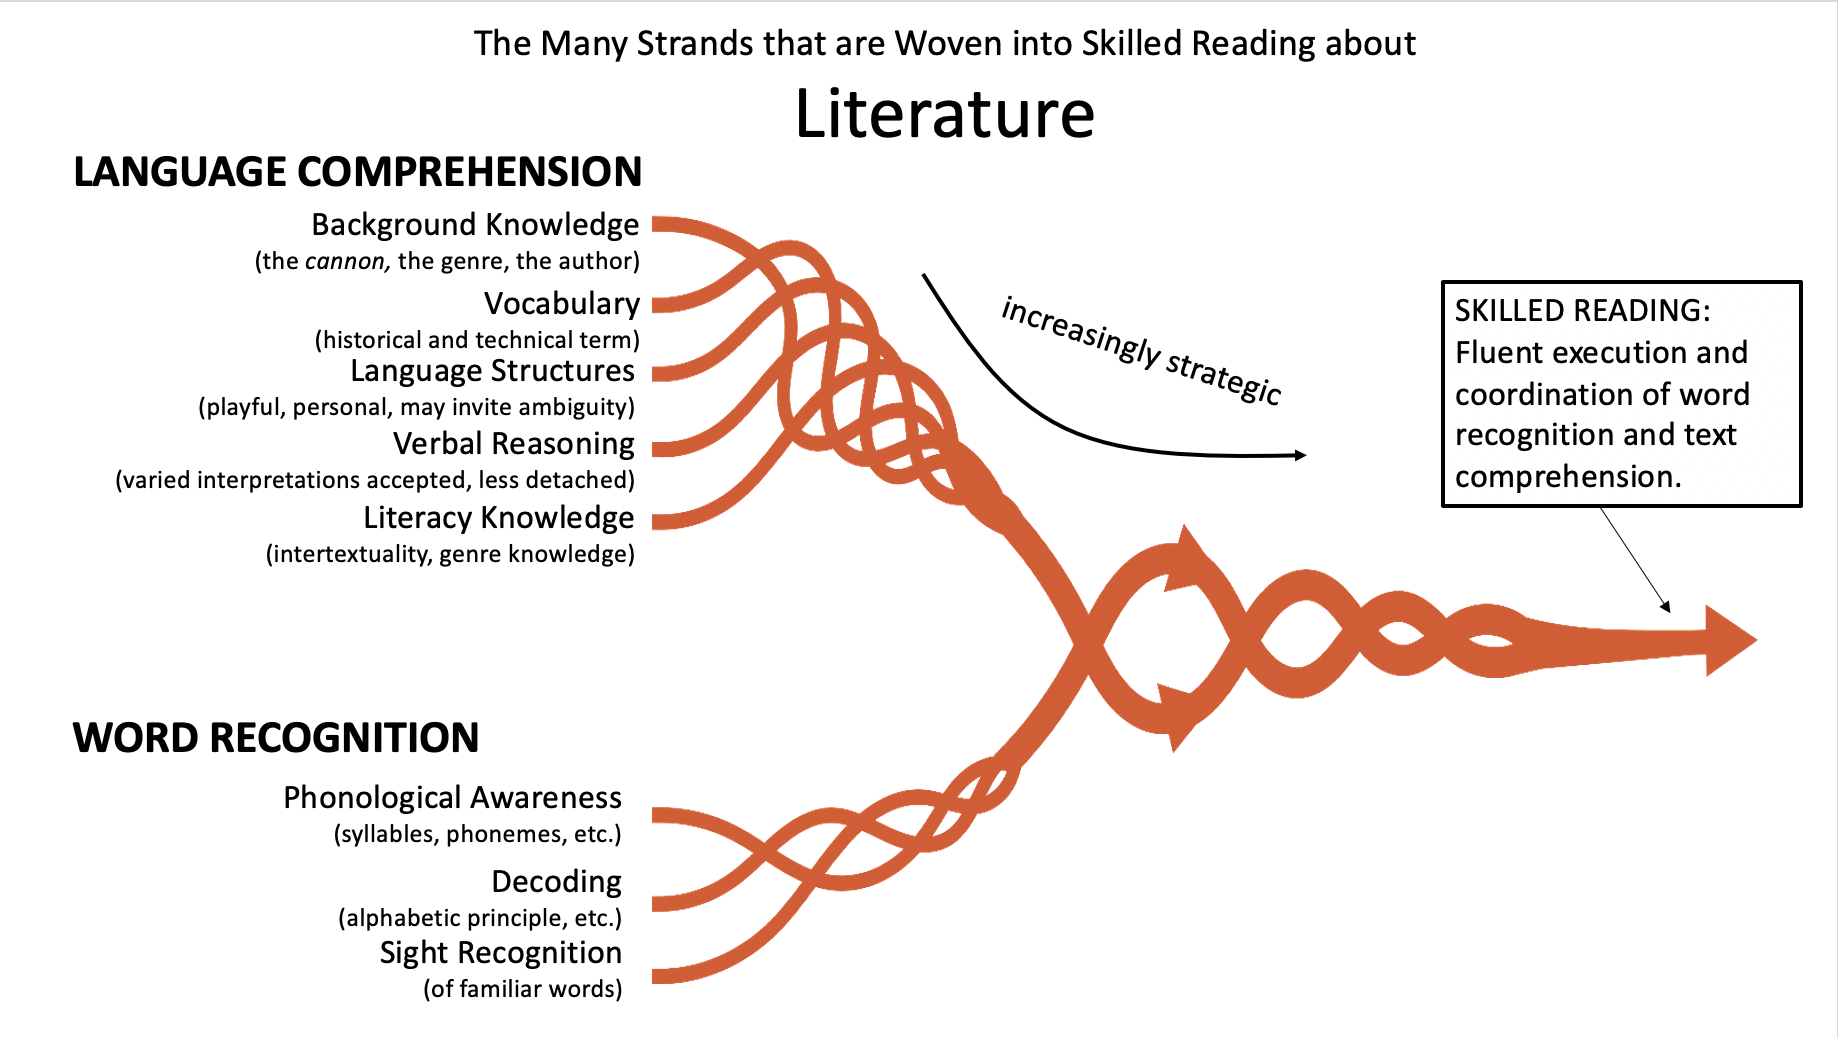 The Many Strands of Skilled Reading in Literature